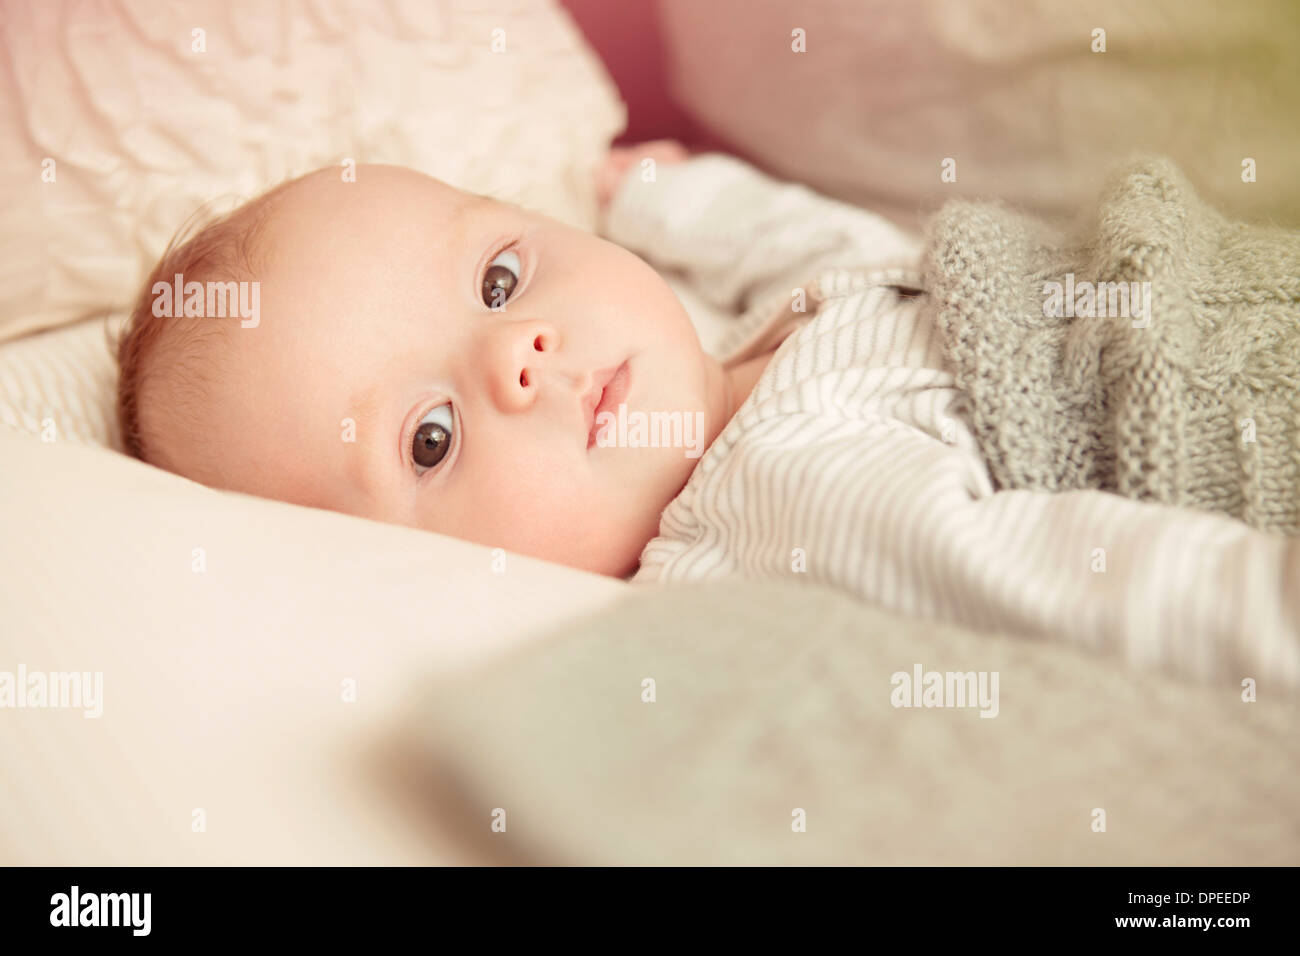 Two month old baby boy lying awake in crib - Stock Image